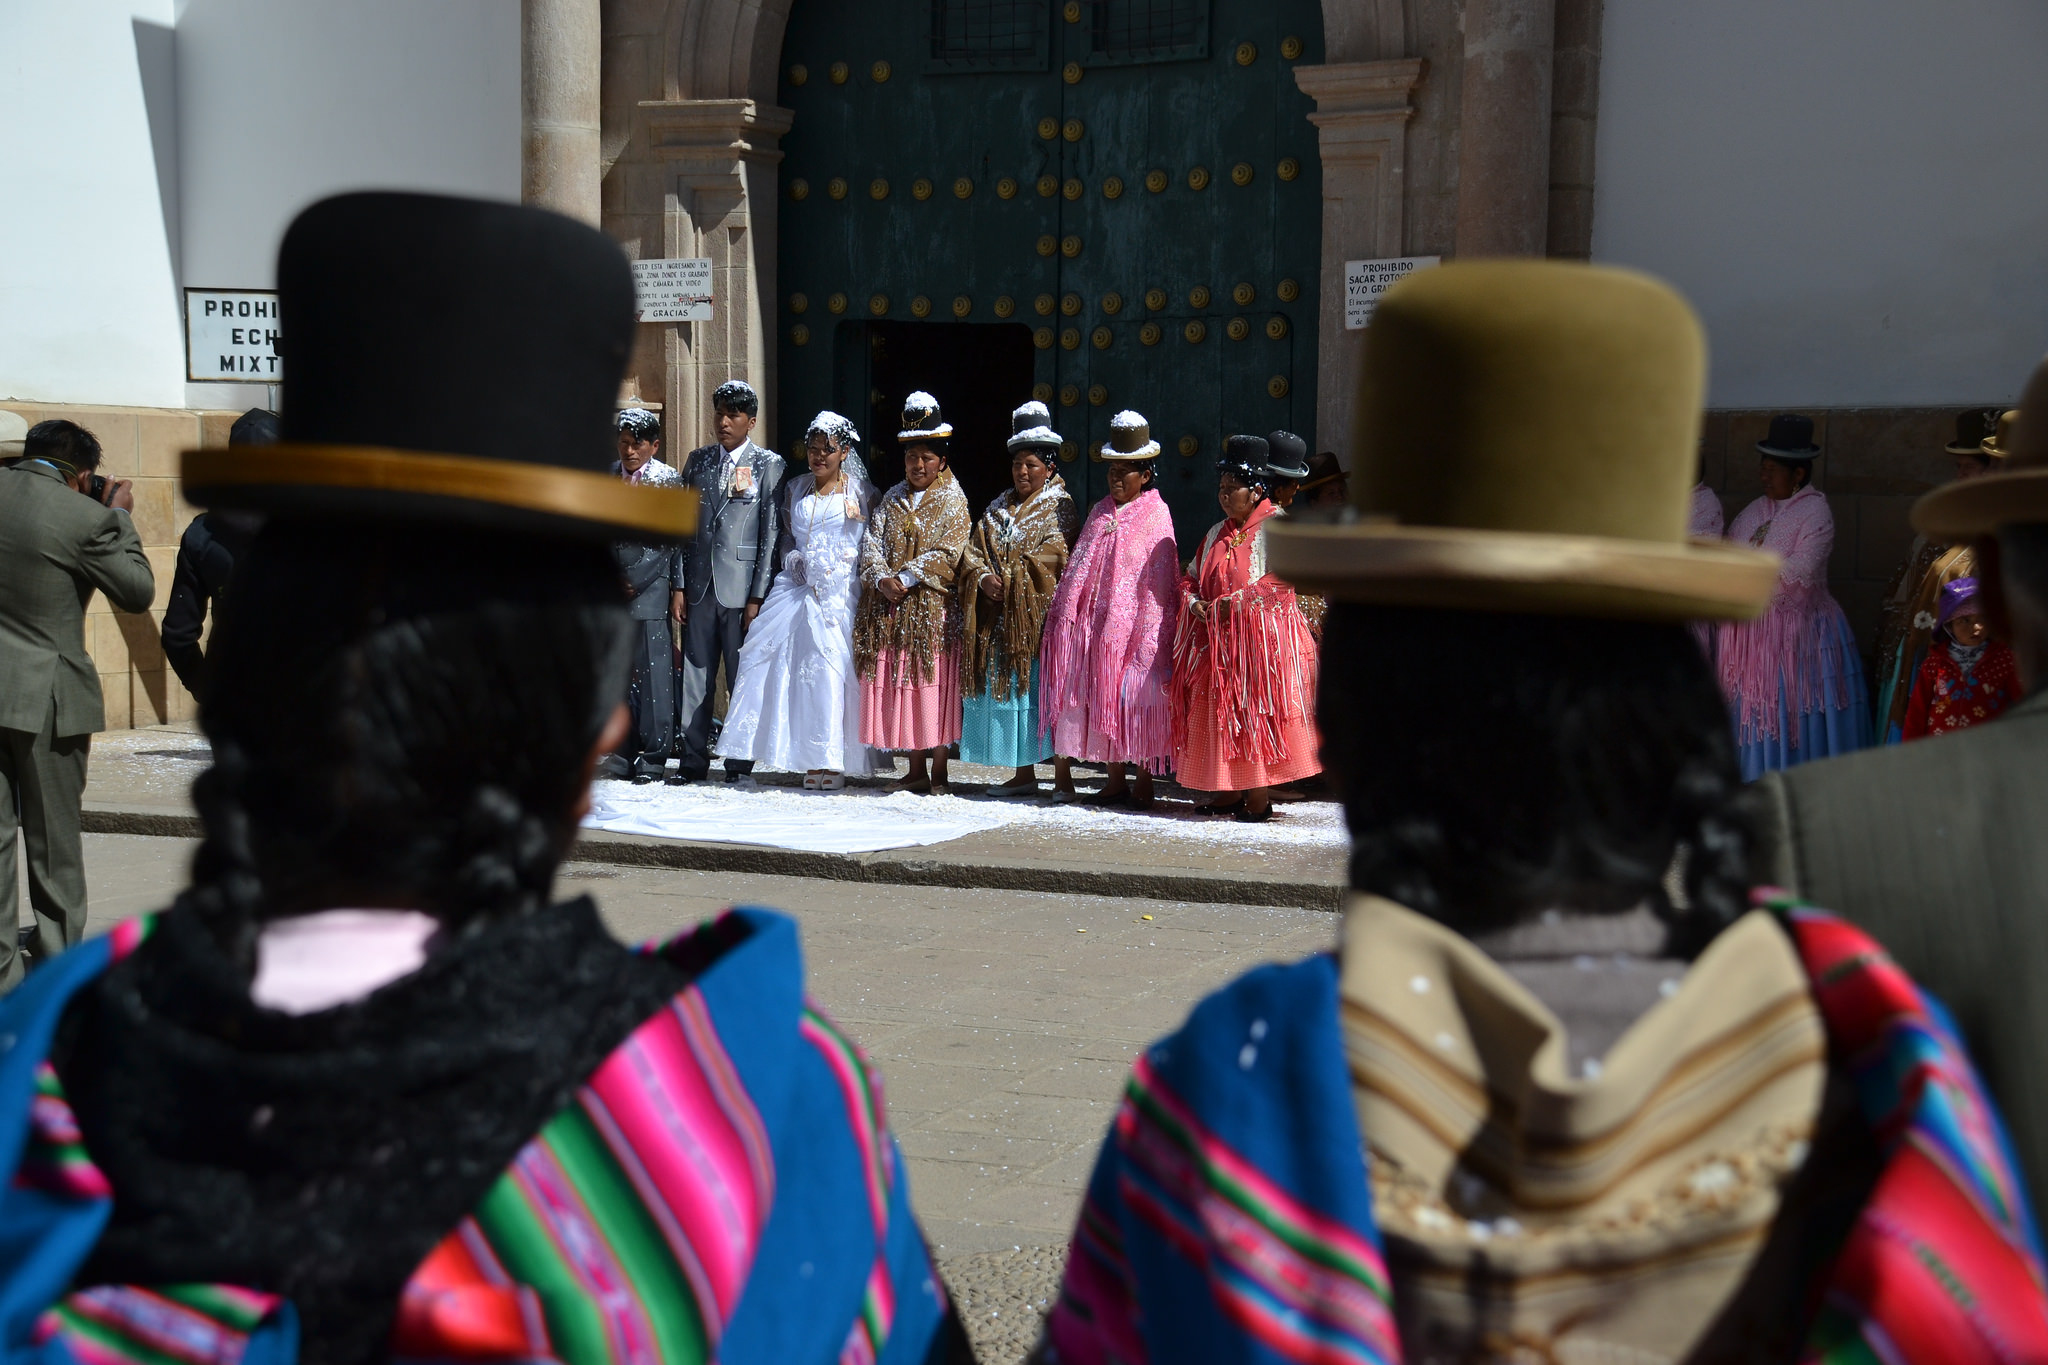 Bolivian women getting married in traditional dress.